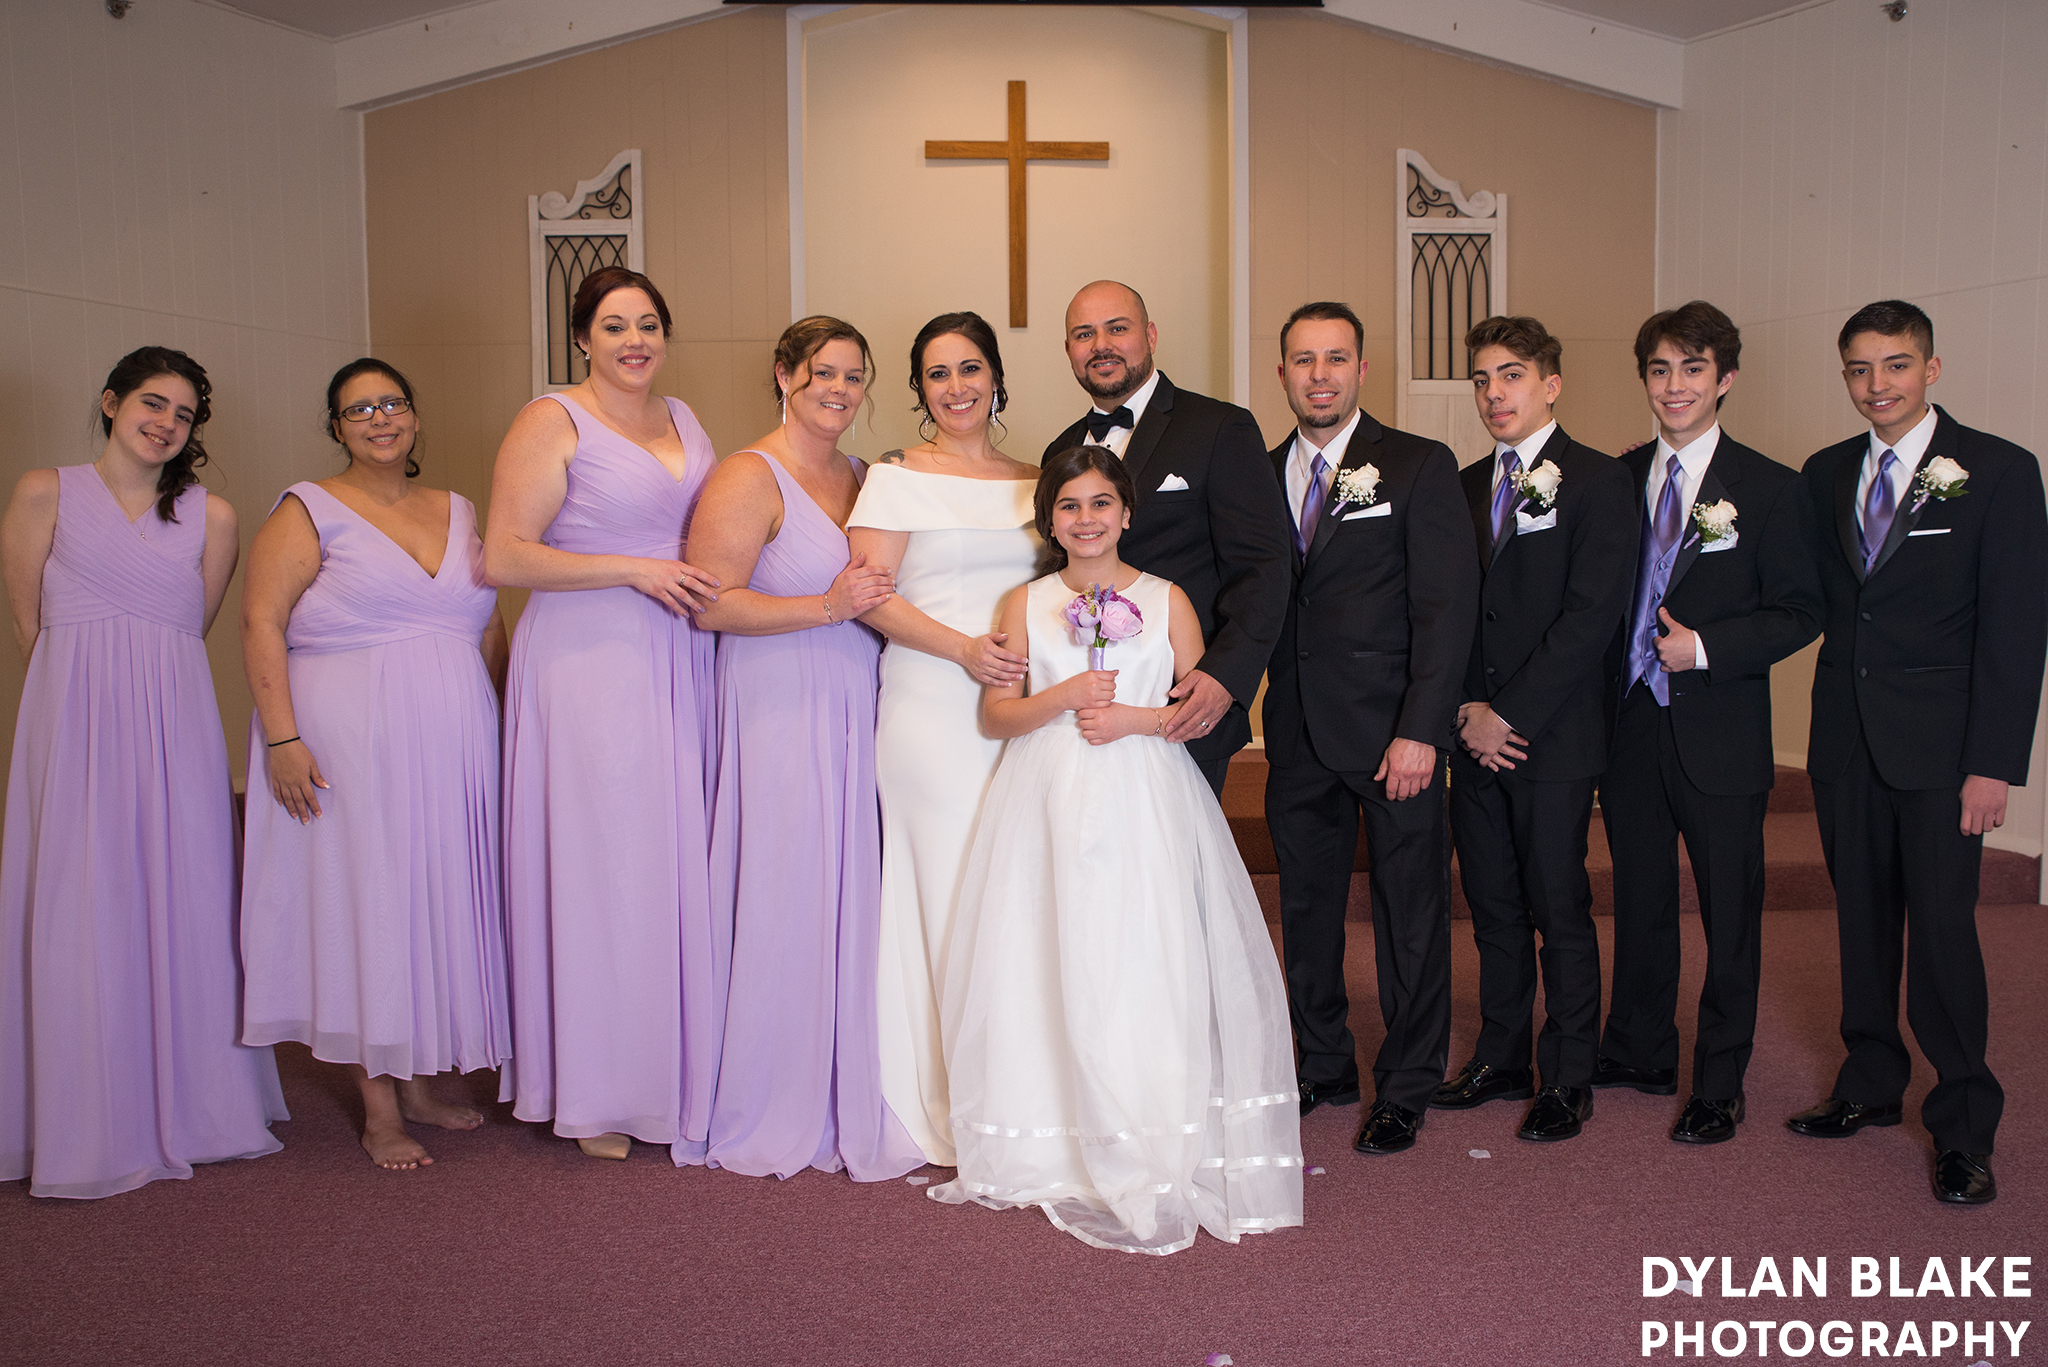 reed-wedding018.jpg